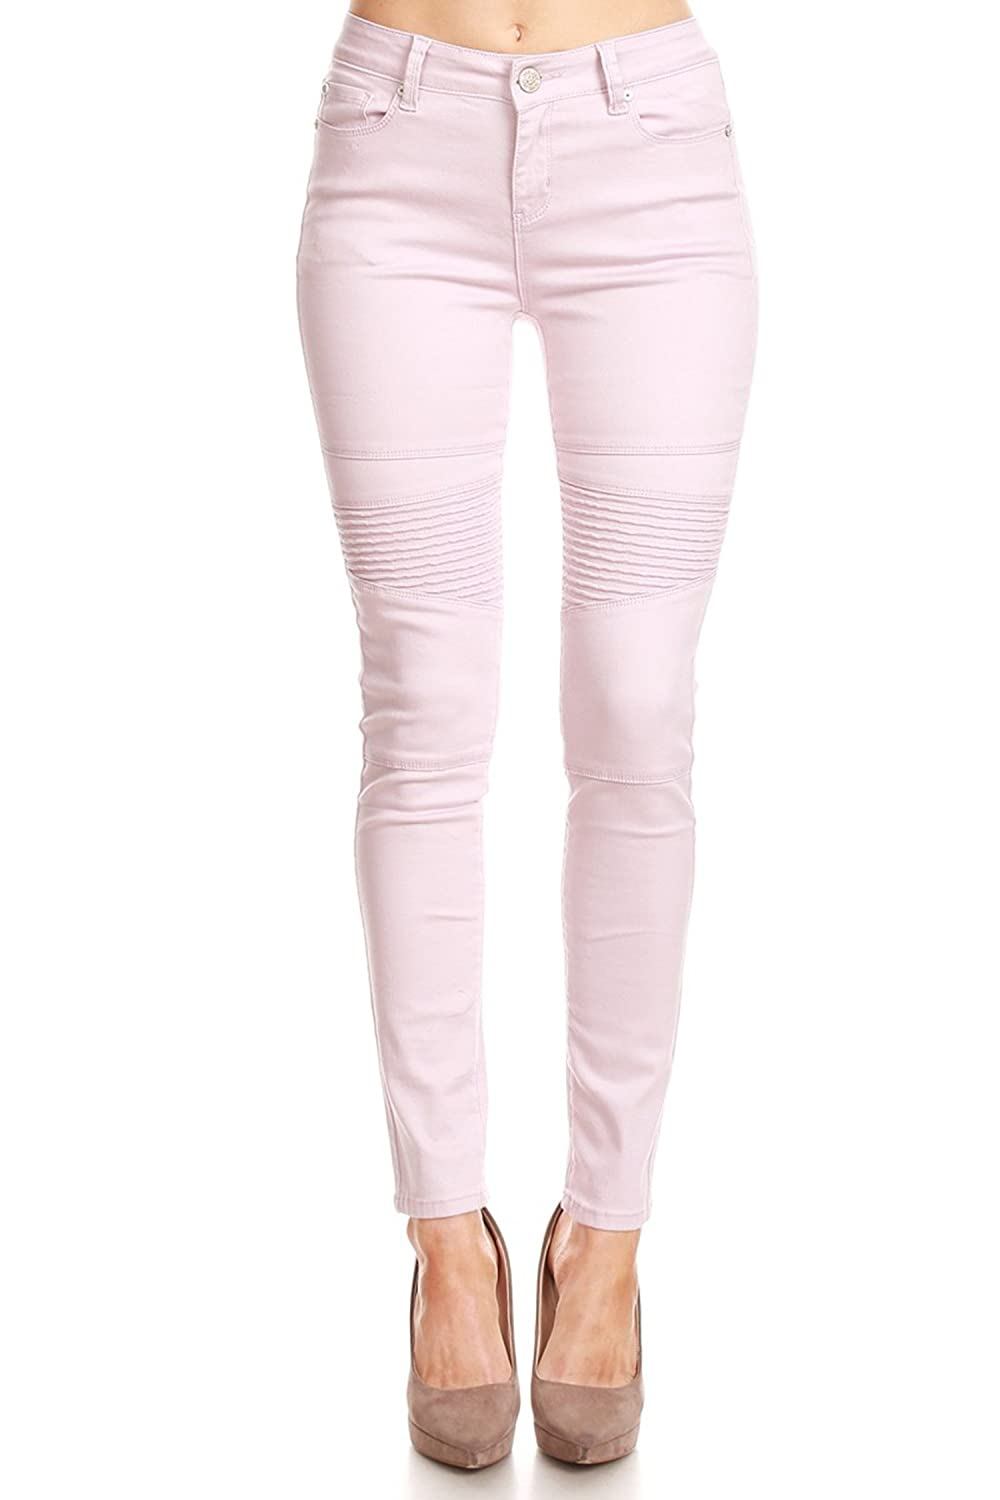 Vialumi Womens Juniors Solid Colored Five Pocket Stretch Skinny Jeans Sizes 0-13